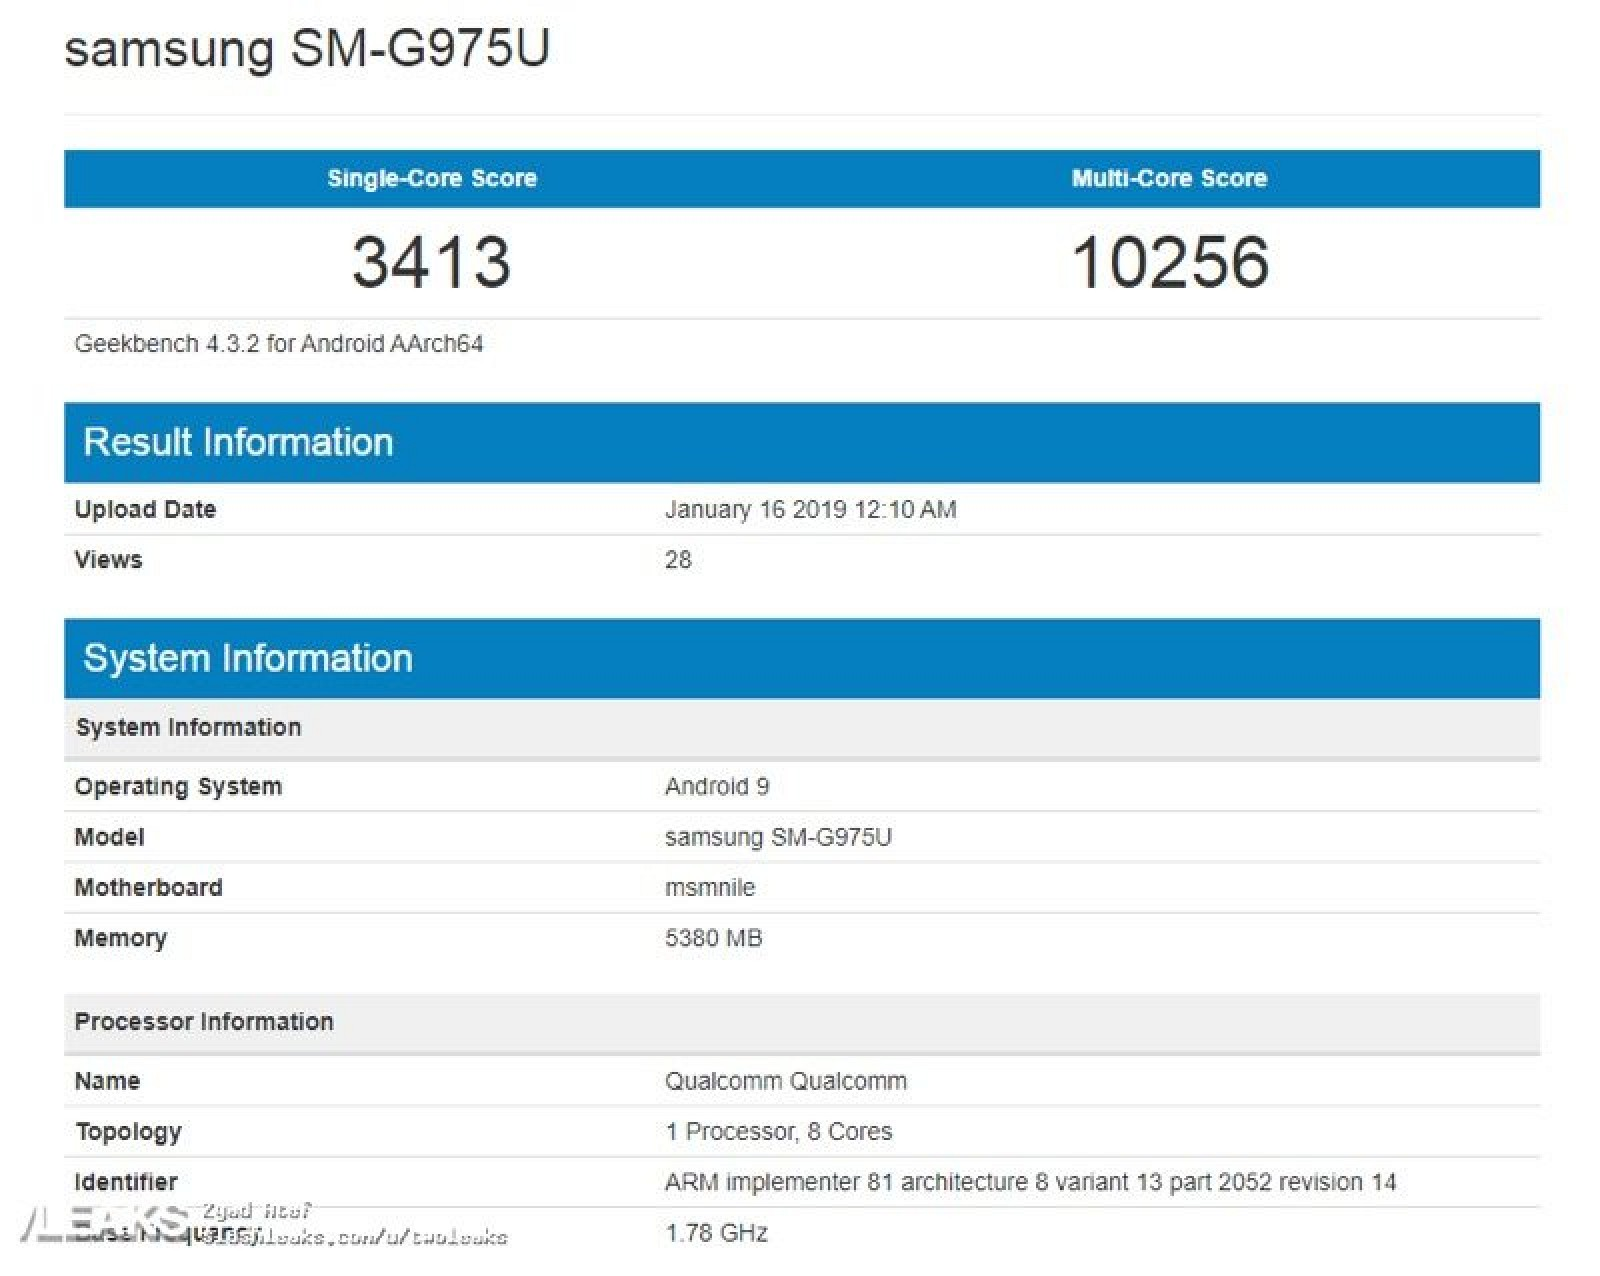 Leaked Benchmarks Suggest iPhone XS Outperforms Samsung's Upcoming Galaxy S10+